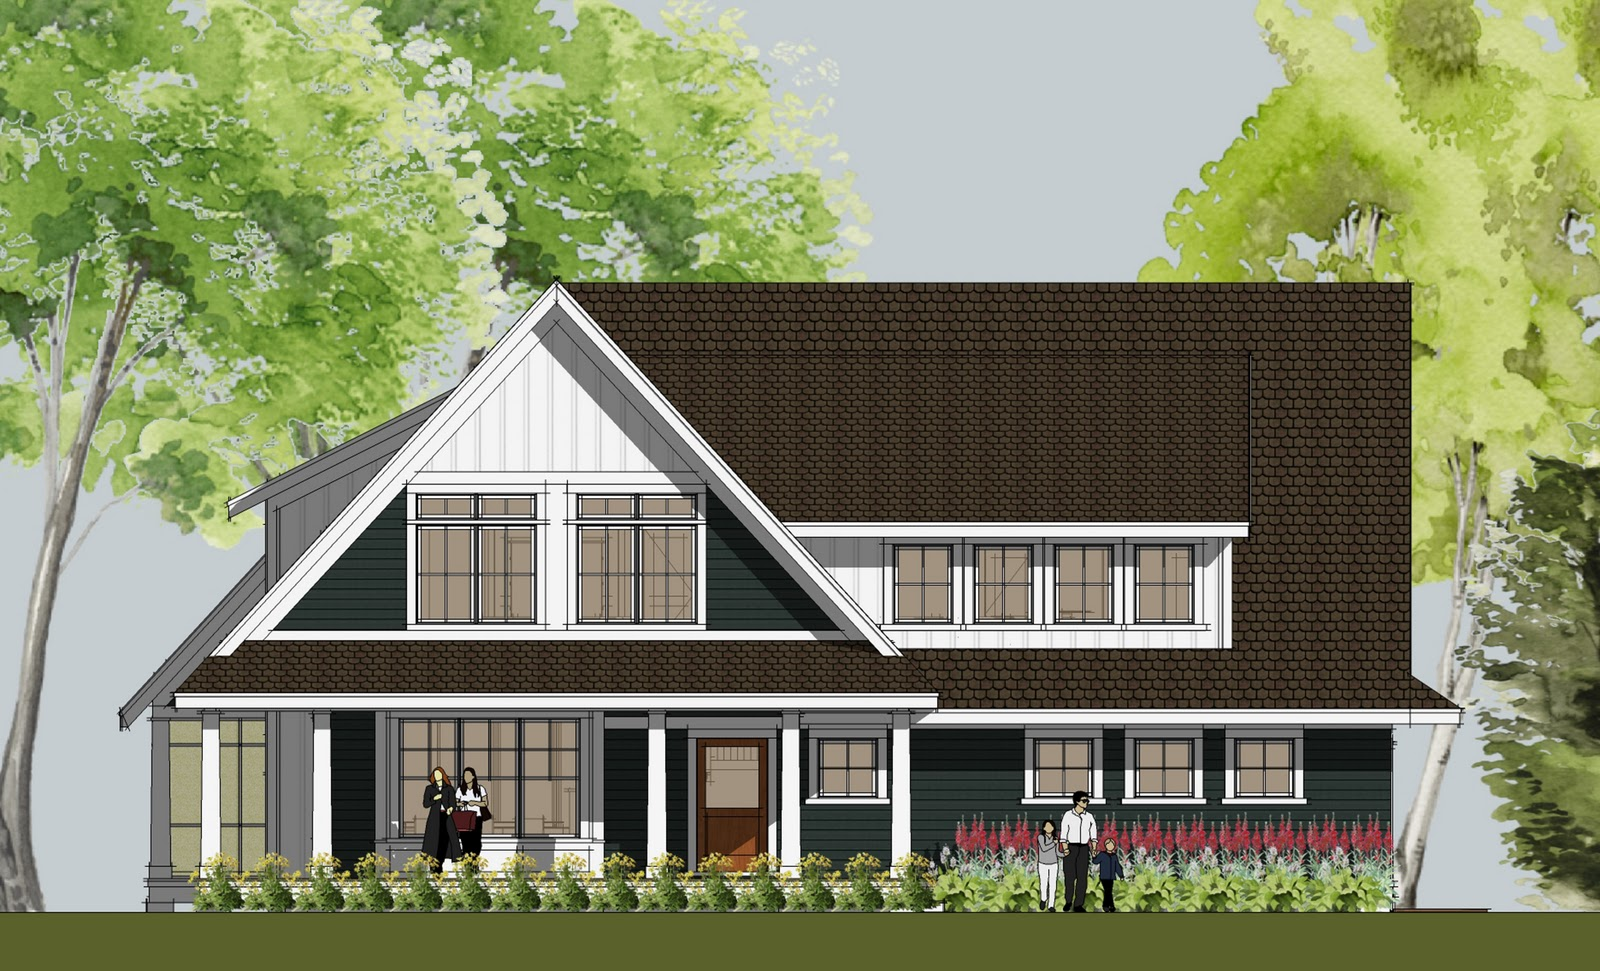 simple elegant house plans ideas photo gallery house